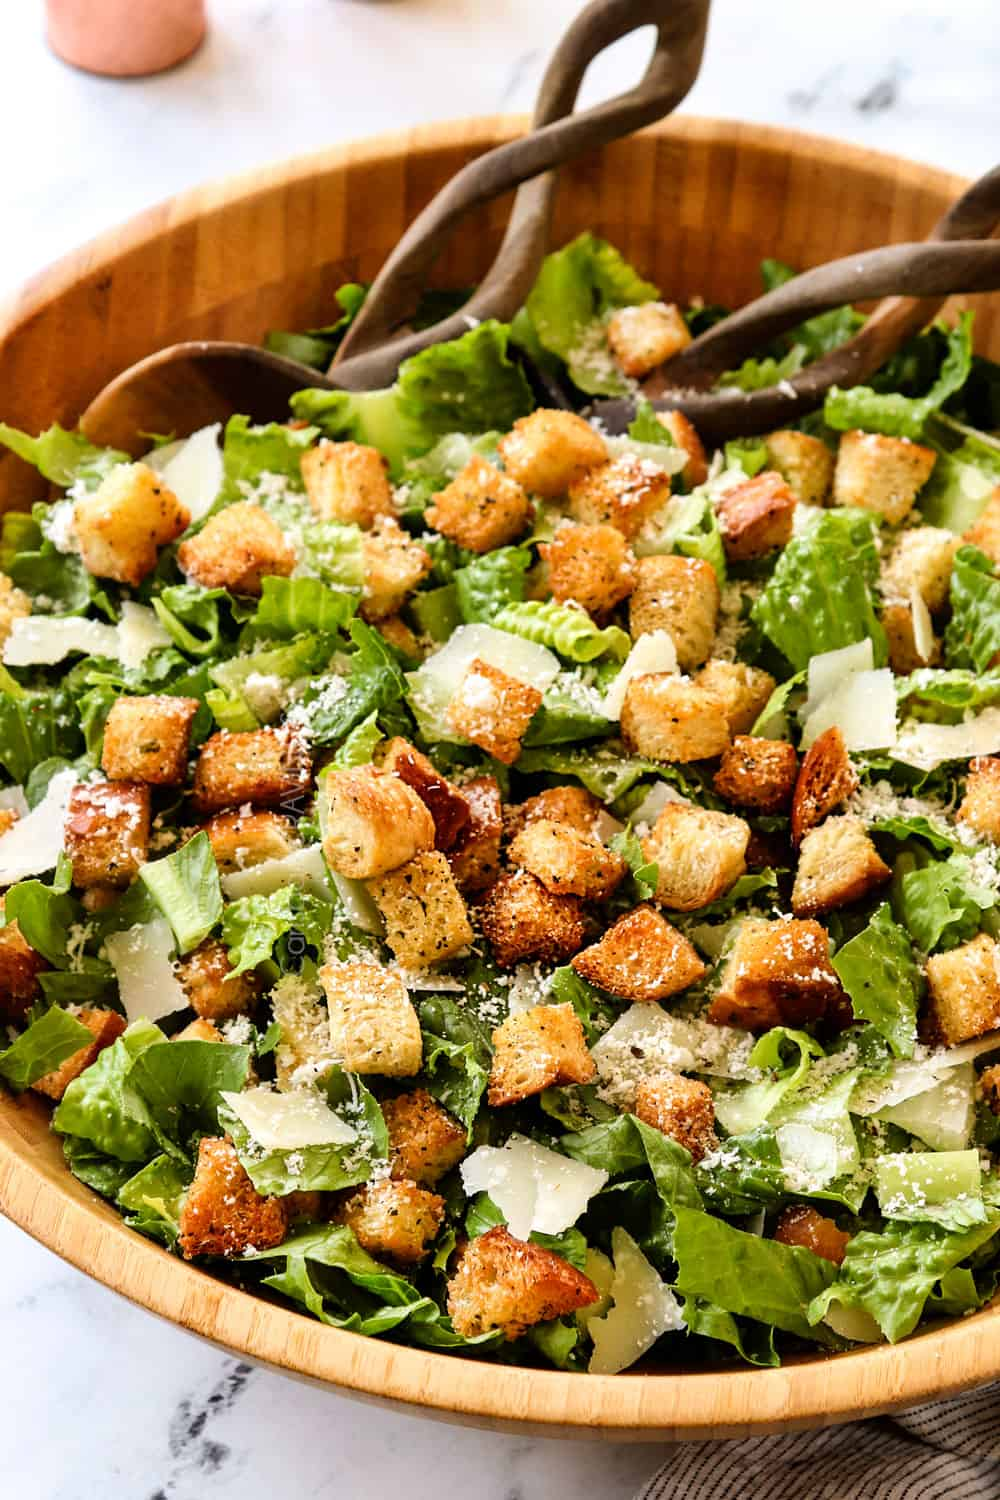 showing what's in Caesar Salad recipe by adding Romaine lettuce, croutons, Parmesan and homemade Caesar Dressing to a bowl